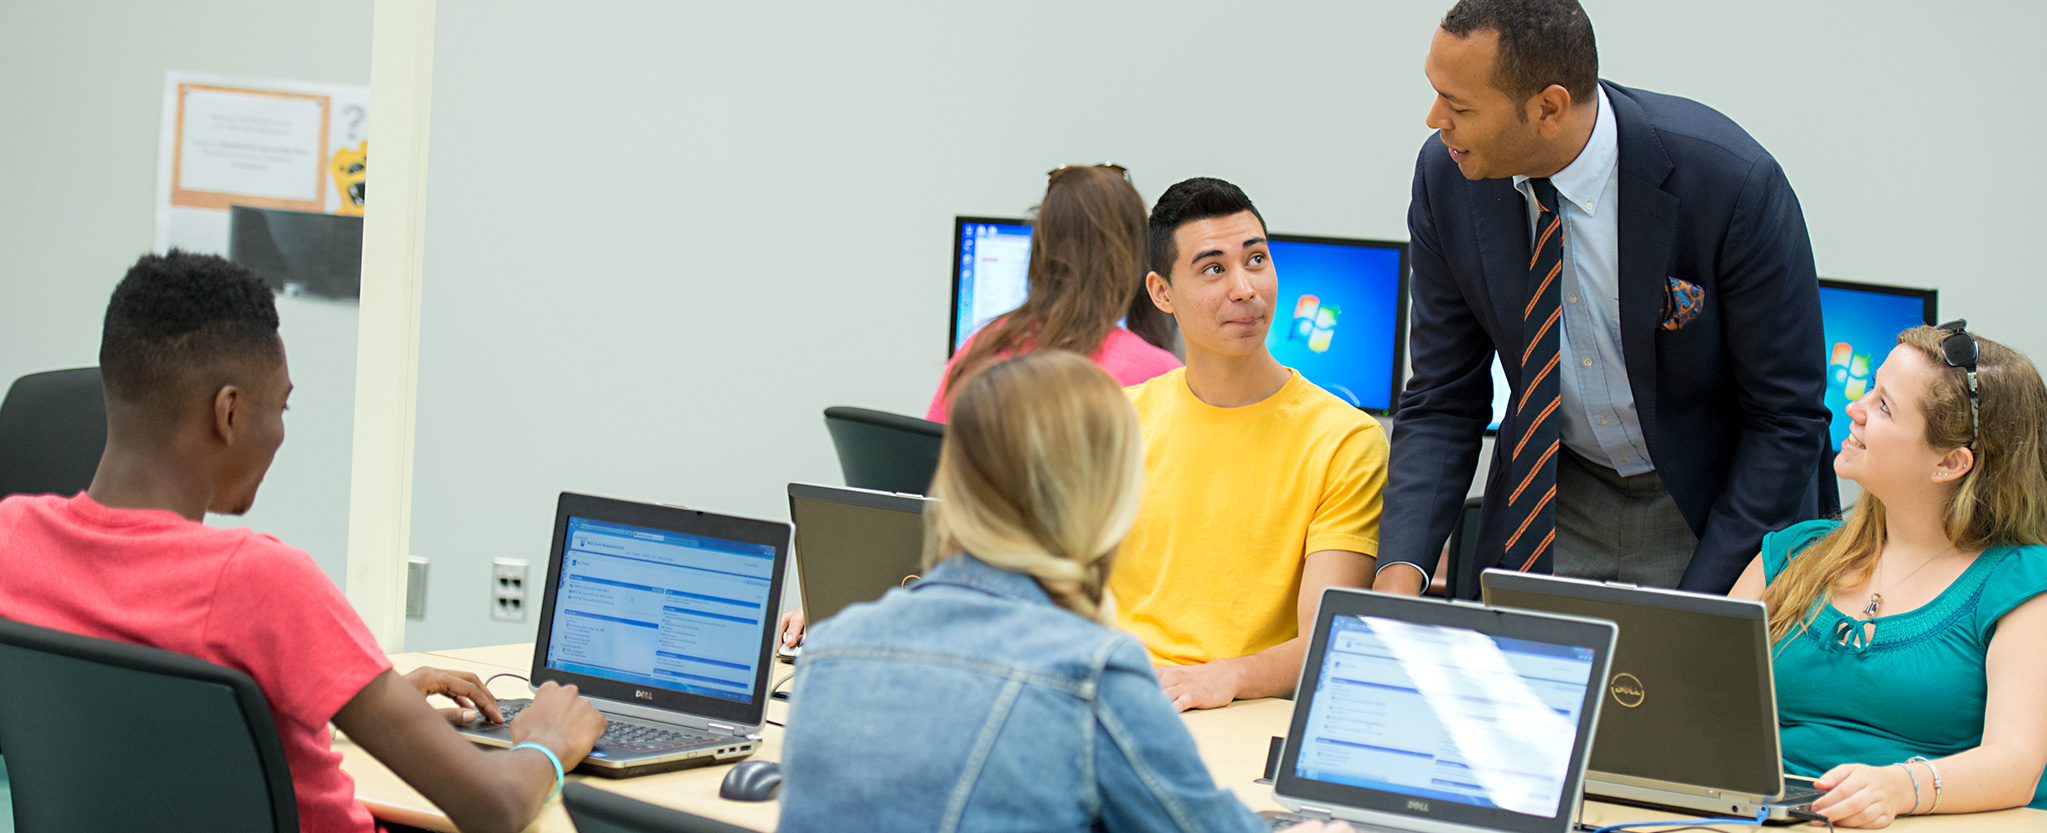 Penn State students interact with their instructor while working on laptops in a classroom.